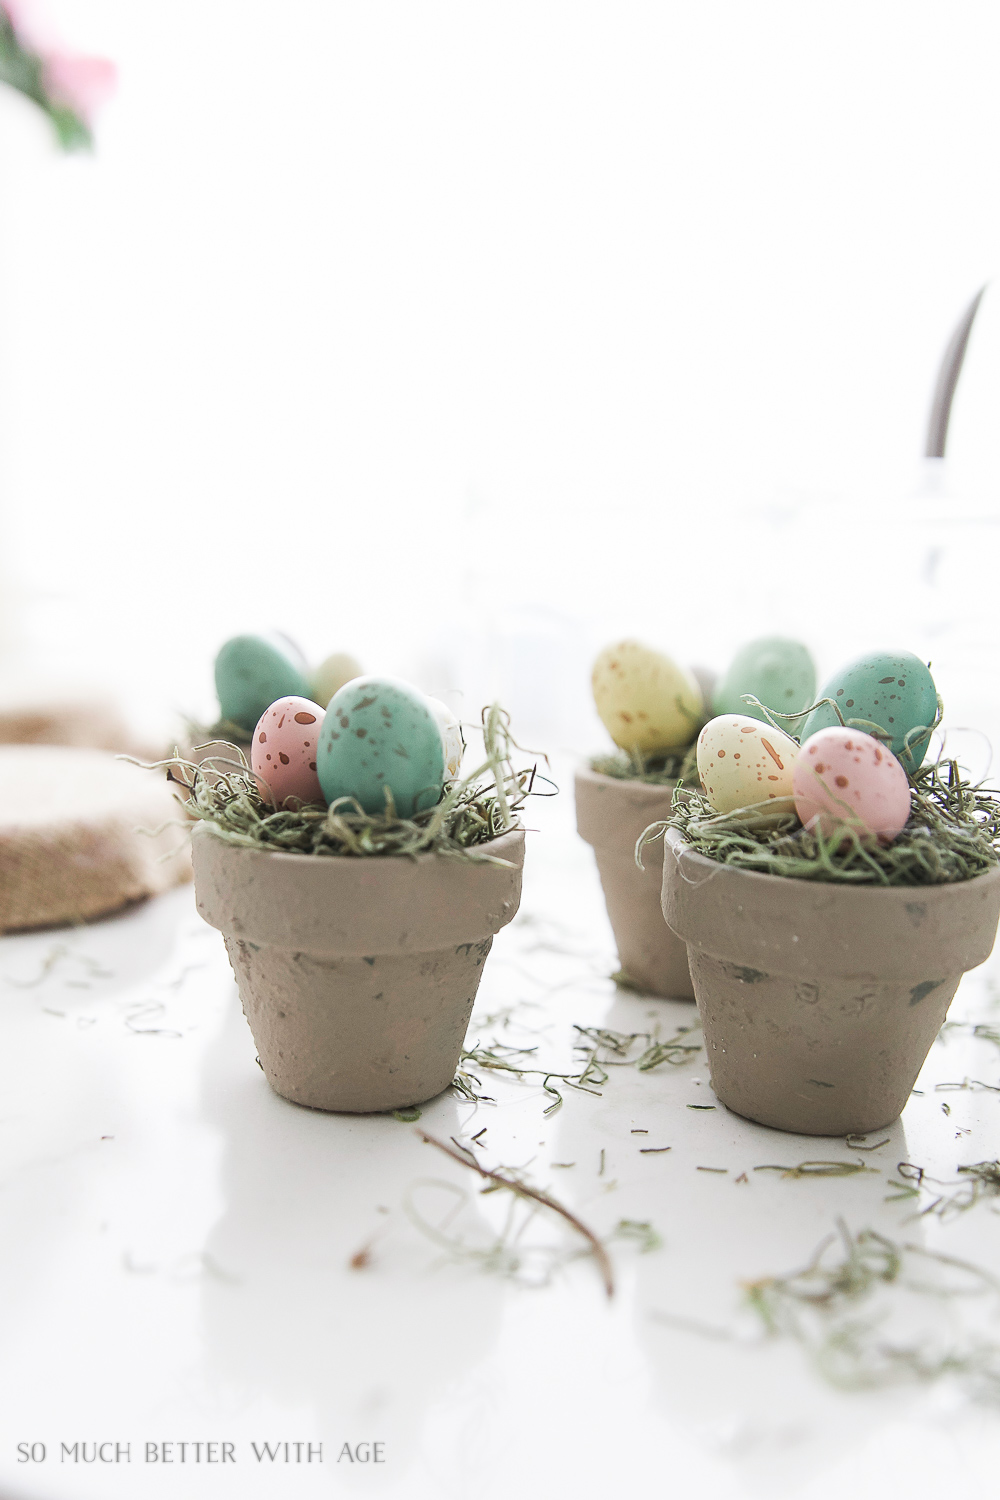 Glass Easter Jars with Bunny Ears / pretty eggs in pot - So Much Better With Age